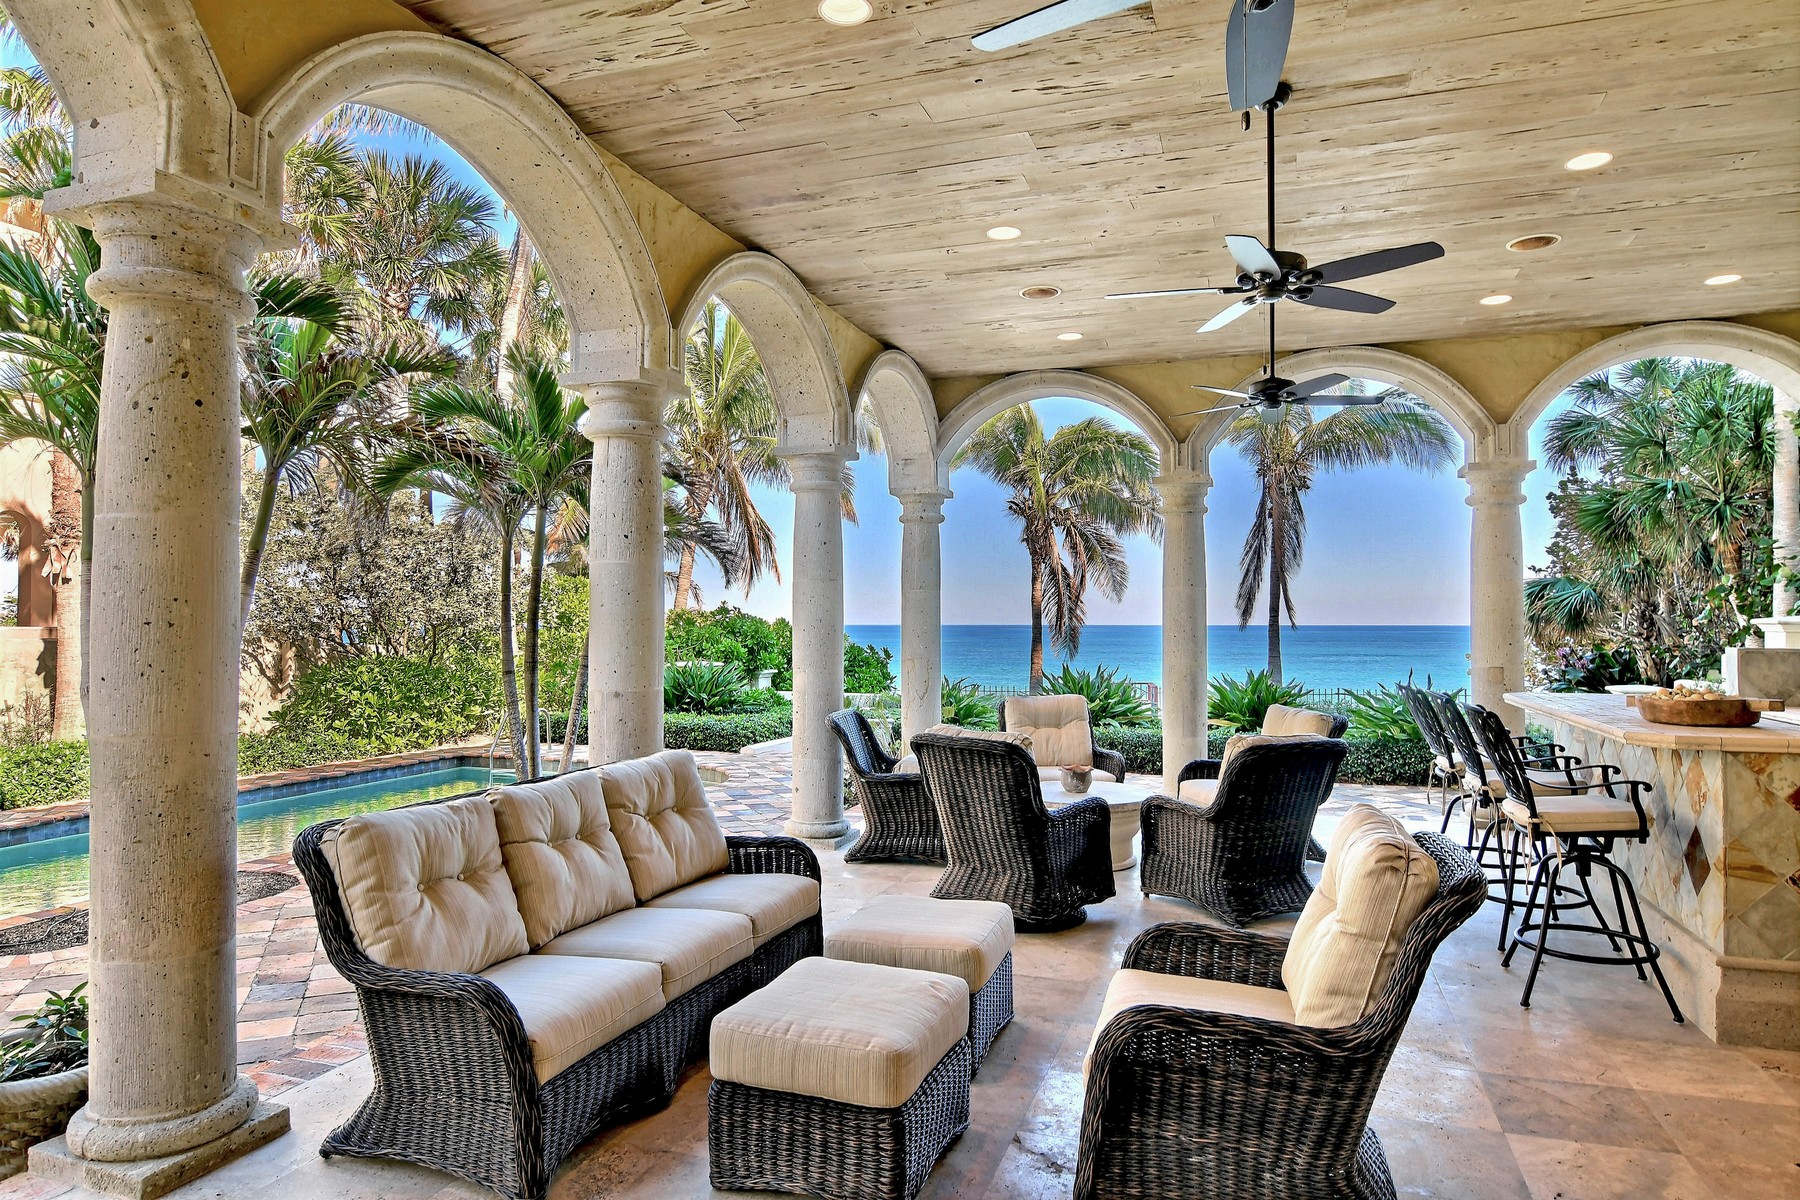 Single Family Home for Sale at Mediterranean Oceanfront Masterpiece! 3620 Ocean Drive Vero Beach, Florida 32963 United States